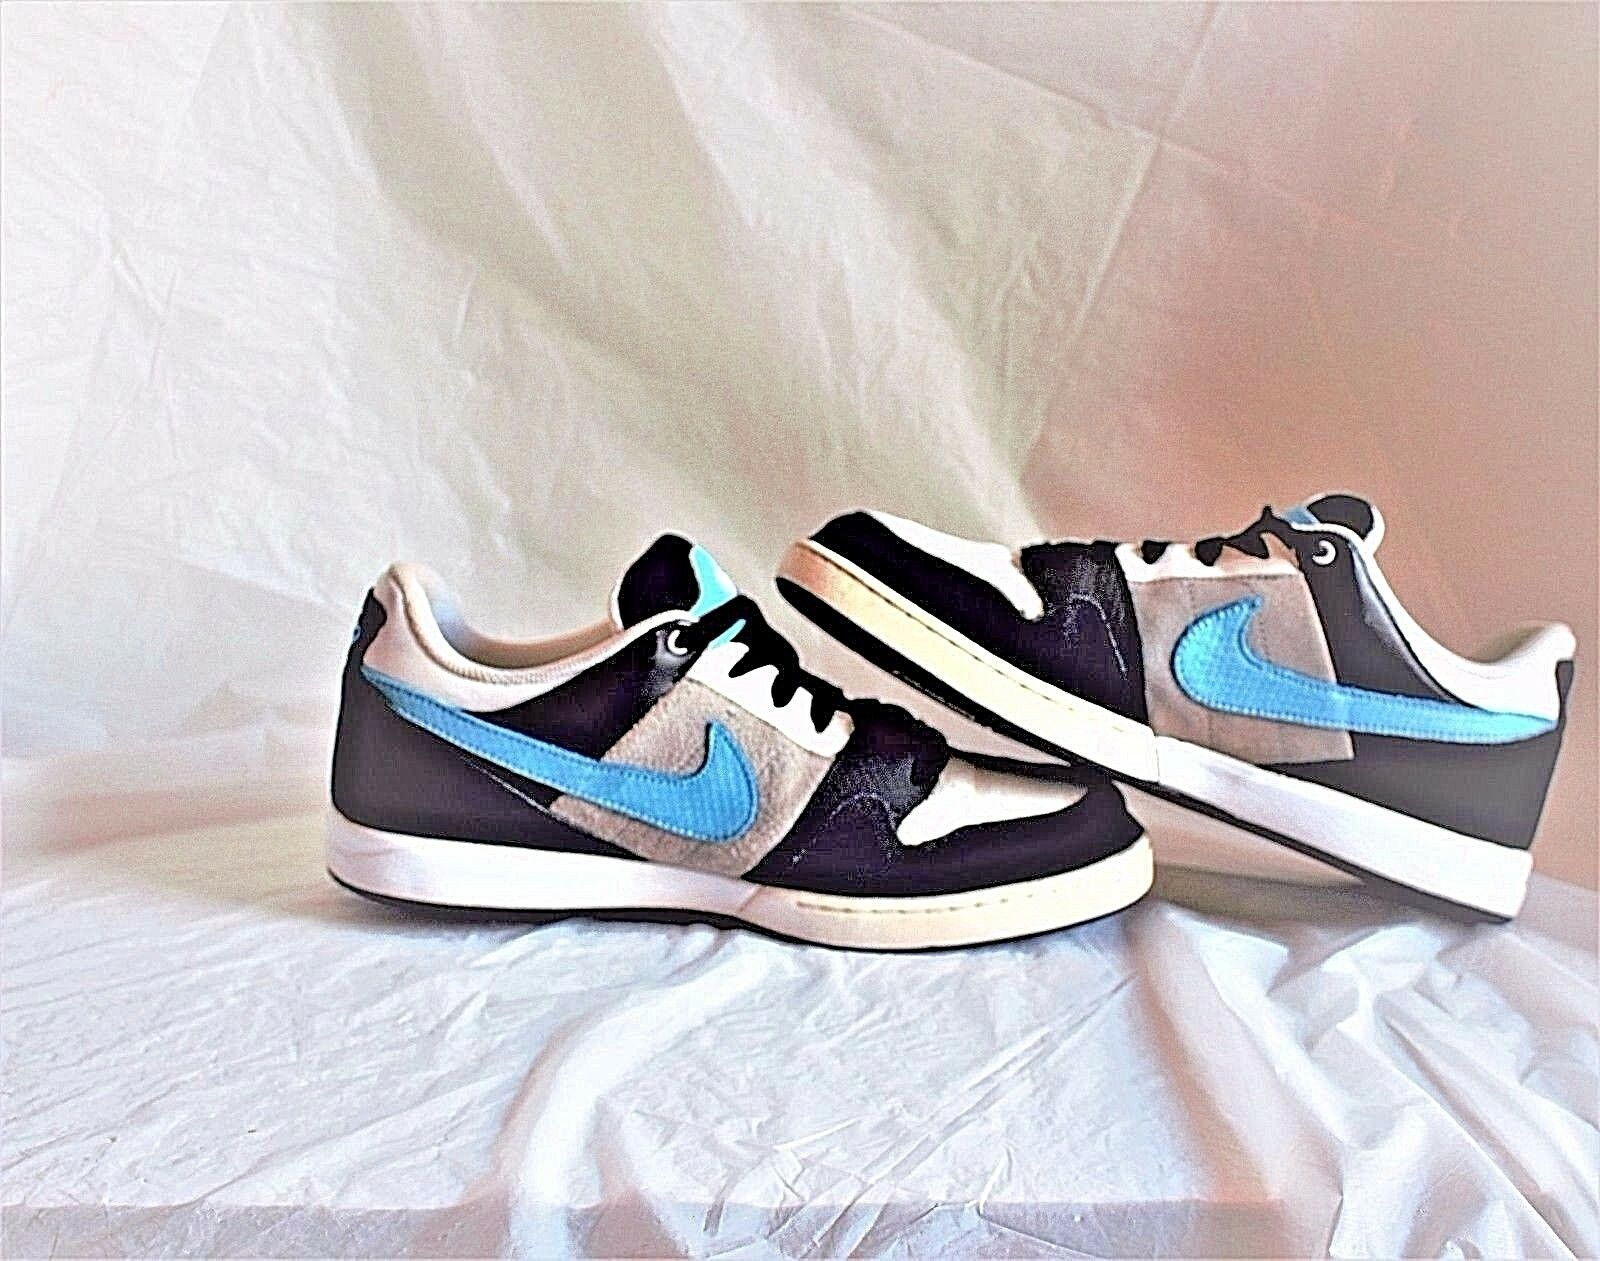 RARE Nike 6.0 Air Zoom Shoes Black/White/Turquoise size 10.5